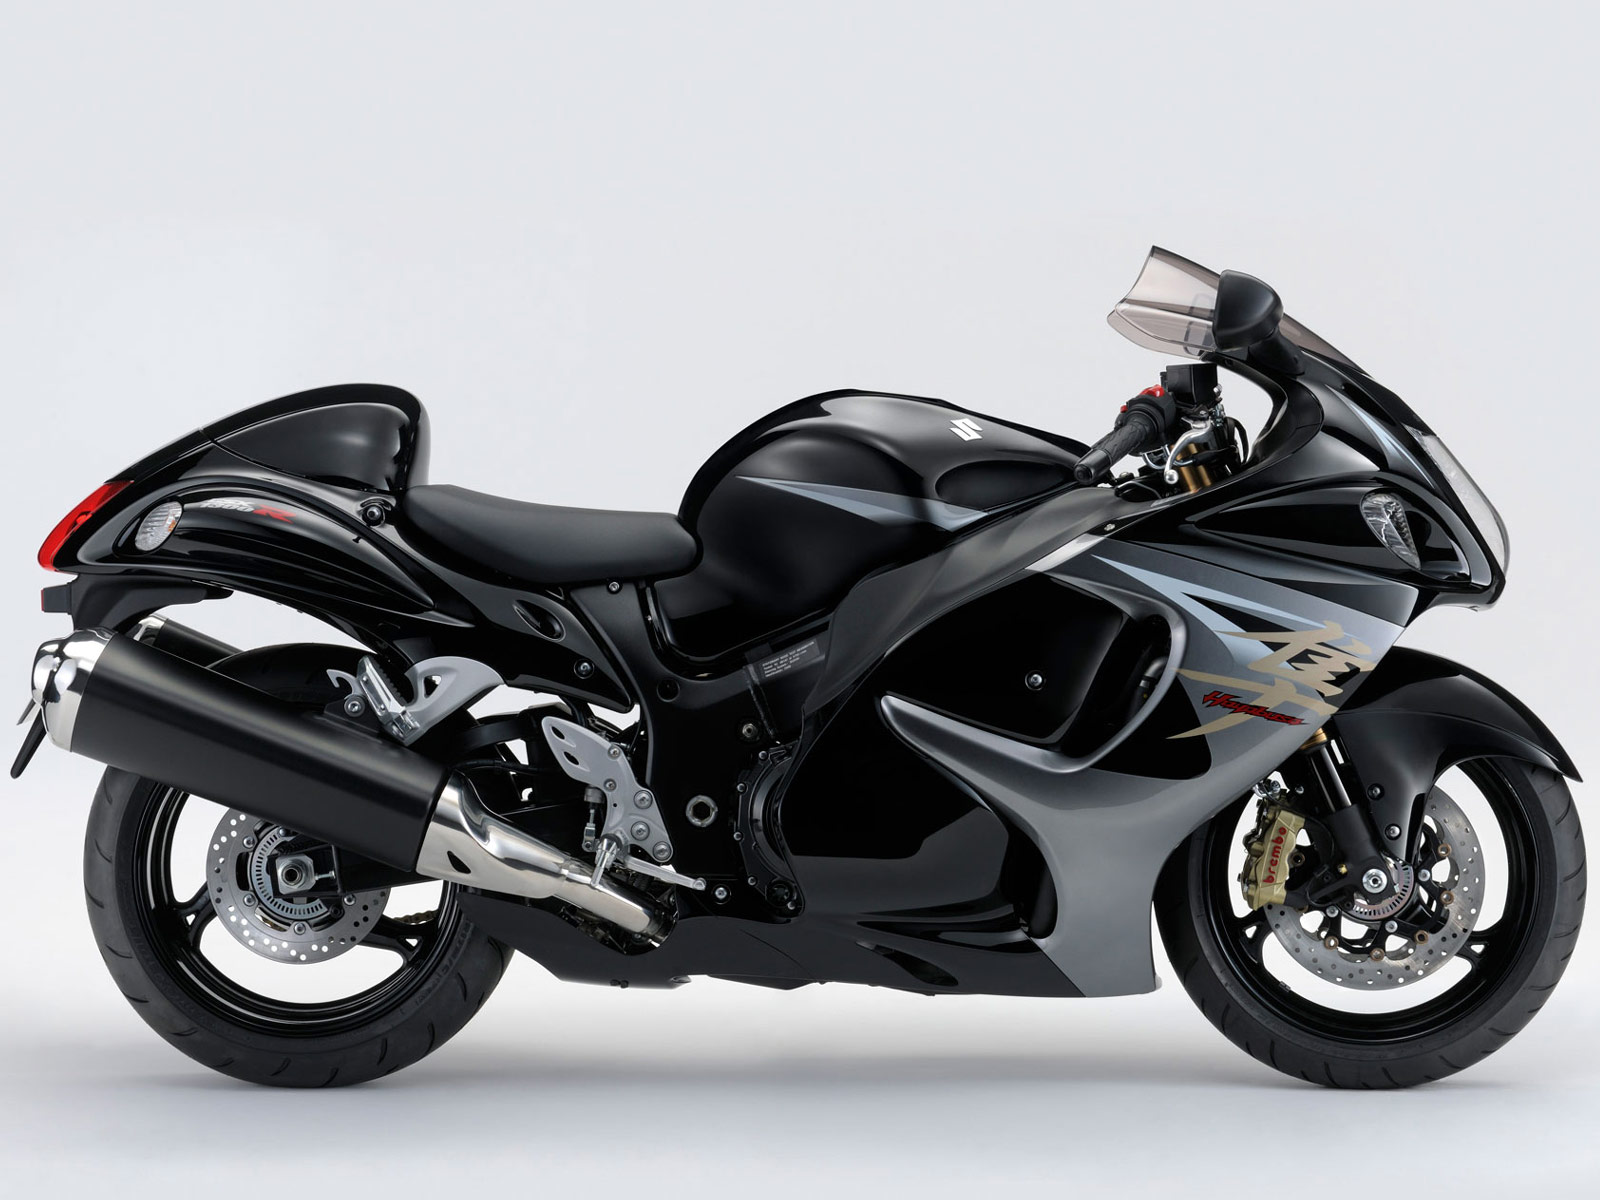 2013 Suzuki Hayabusa Gsx1300r Abs Review Total Motorcycle | Autos